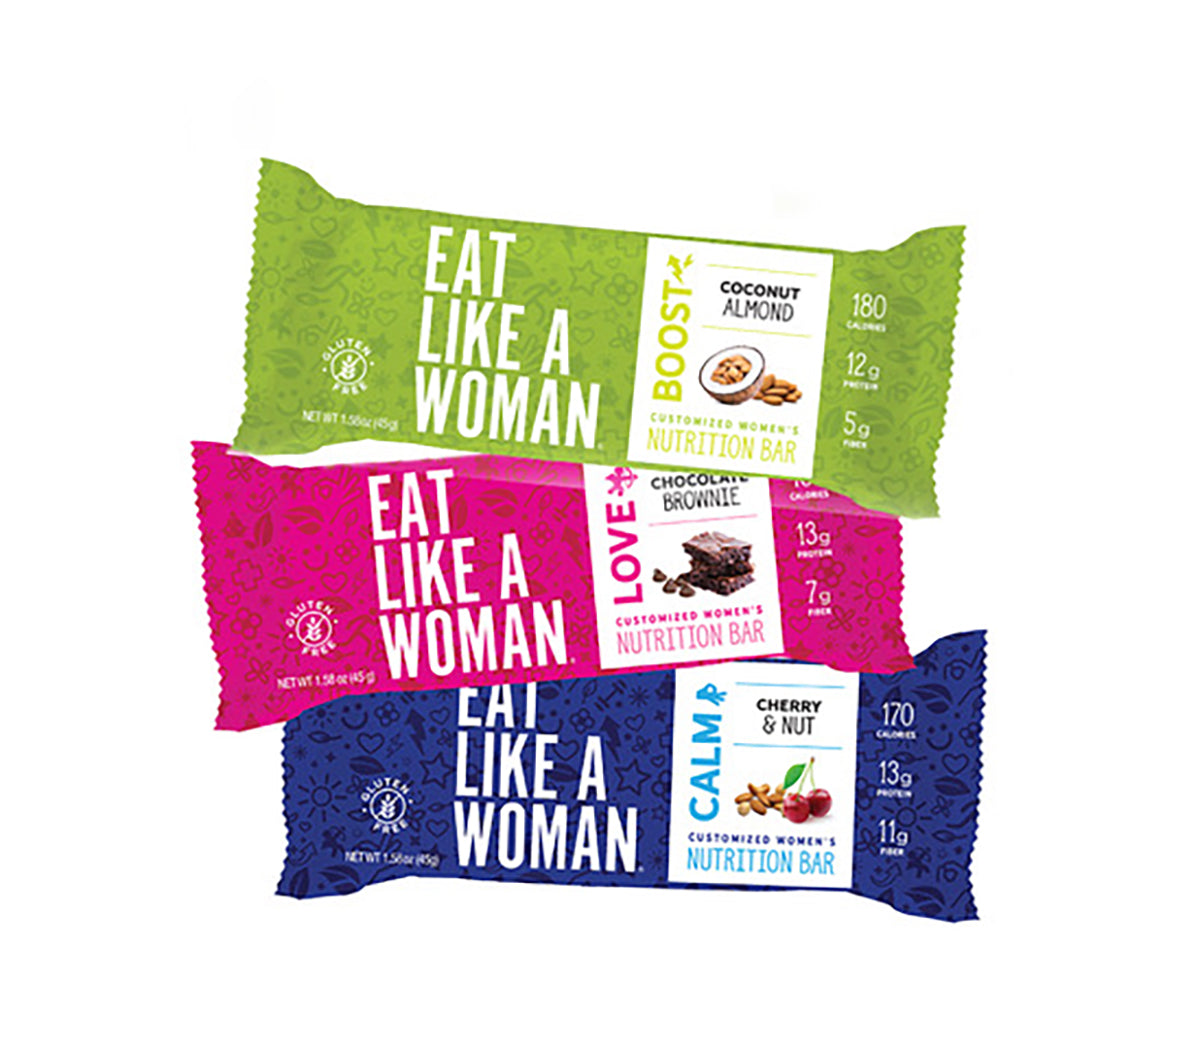 Assorted Flavors 18-pack: 3 Delicious Flavors! Chocolate Brownie, Coconut Almond & Cherry Nut